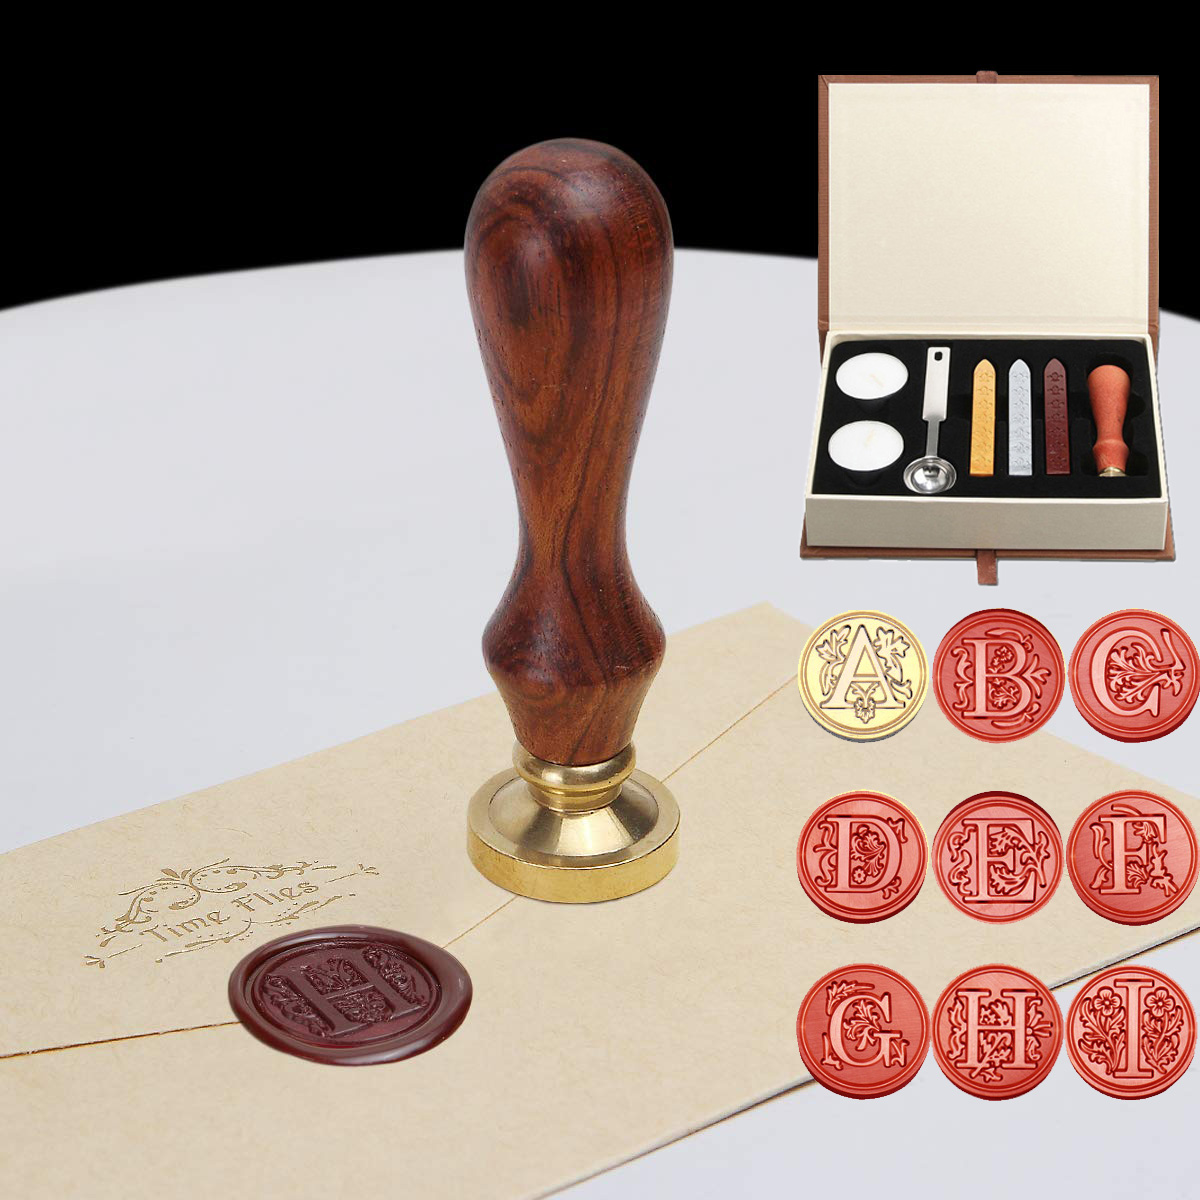 26 Letter Pattern Retro Sealing Wax Set DIY Paper Envelope Decoration Delicate Cuprum Stamps Wood Handle For Wedding Invitation